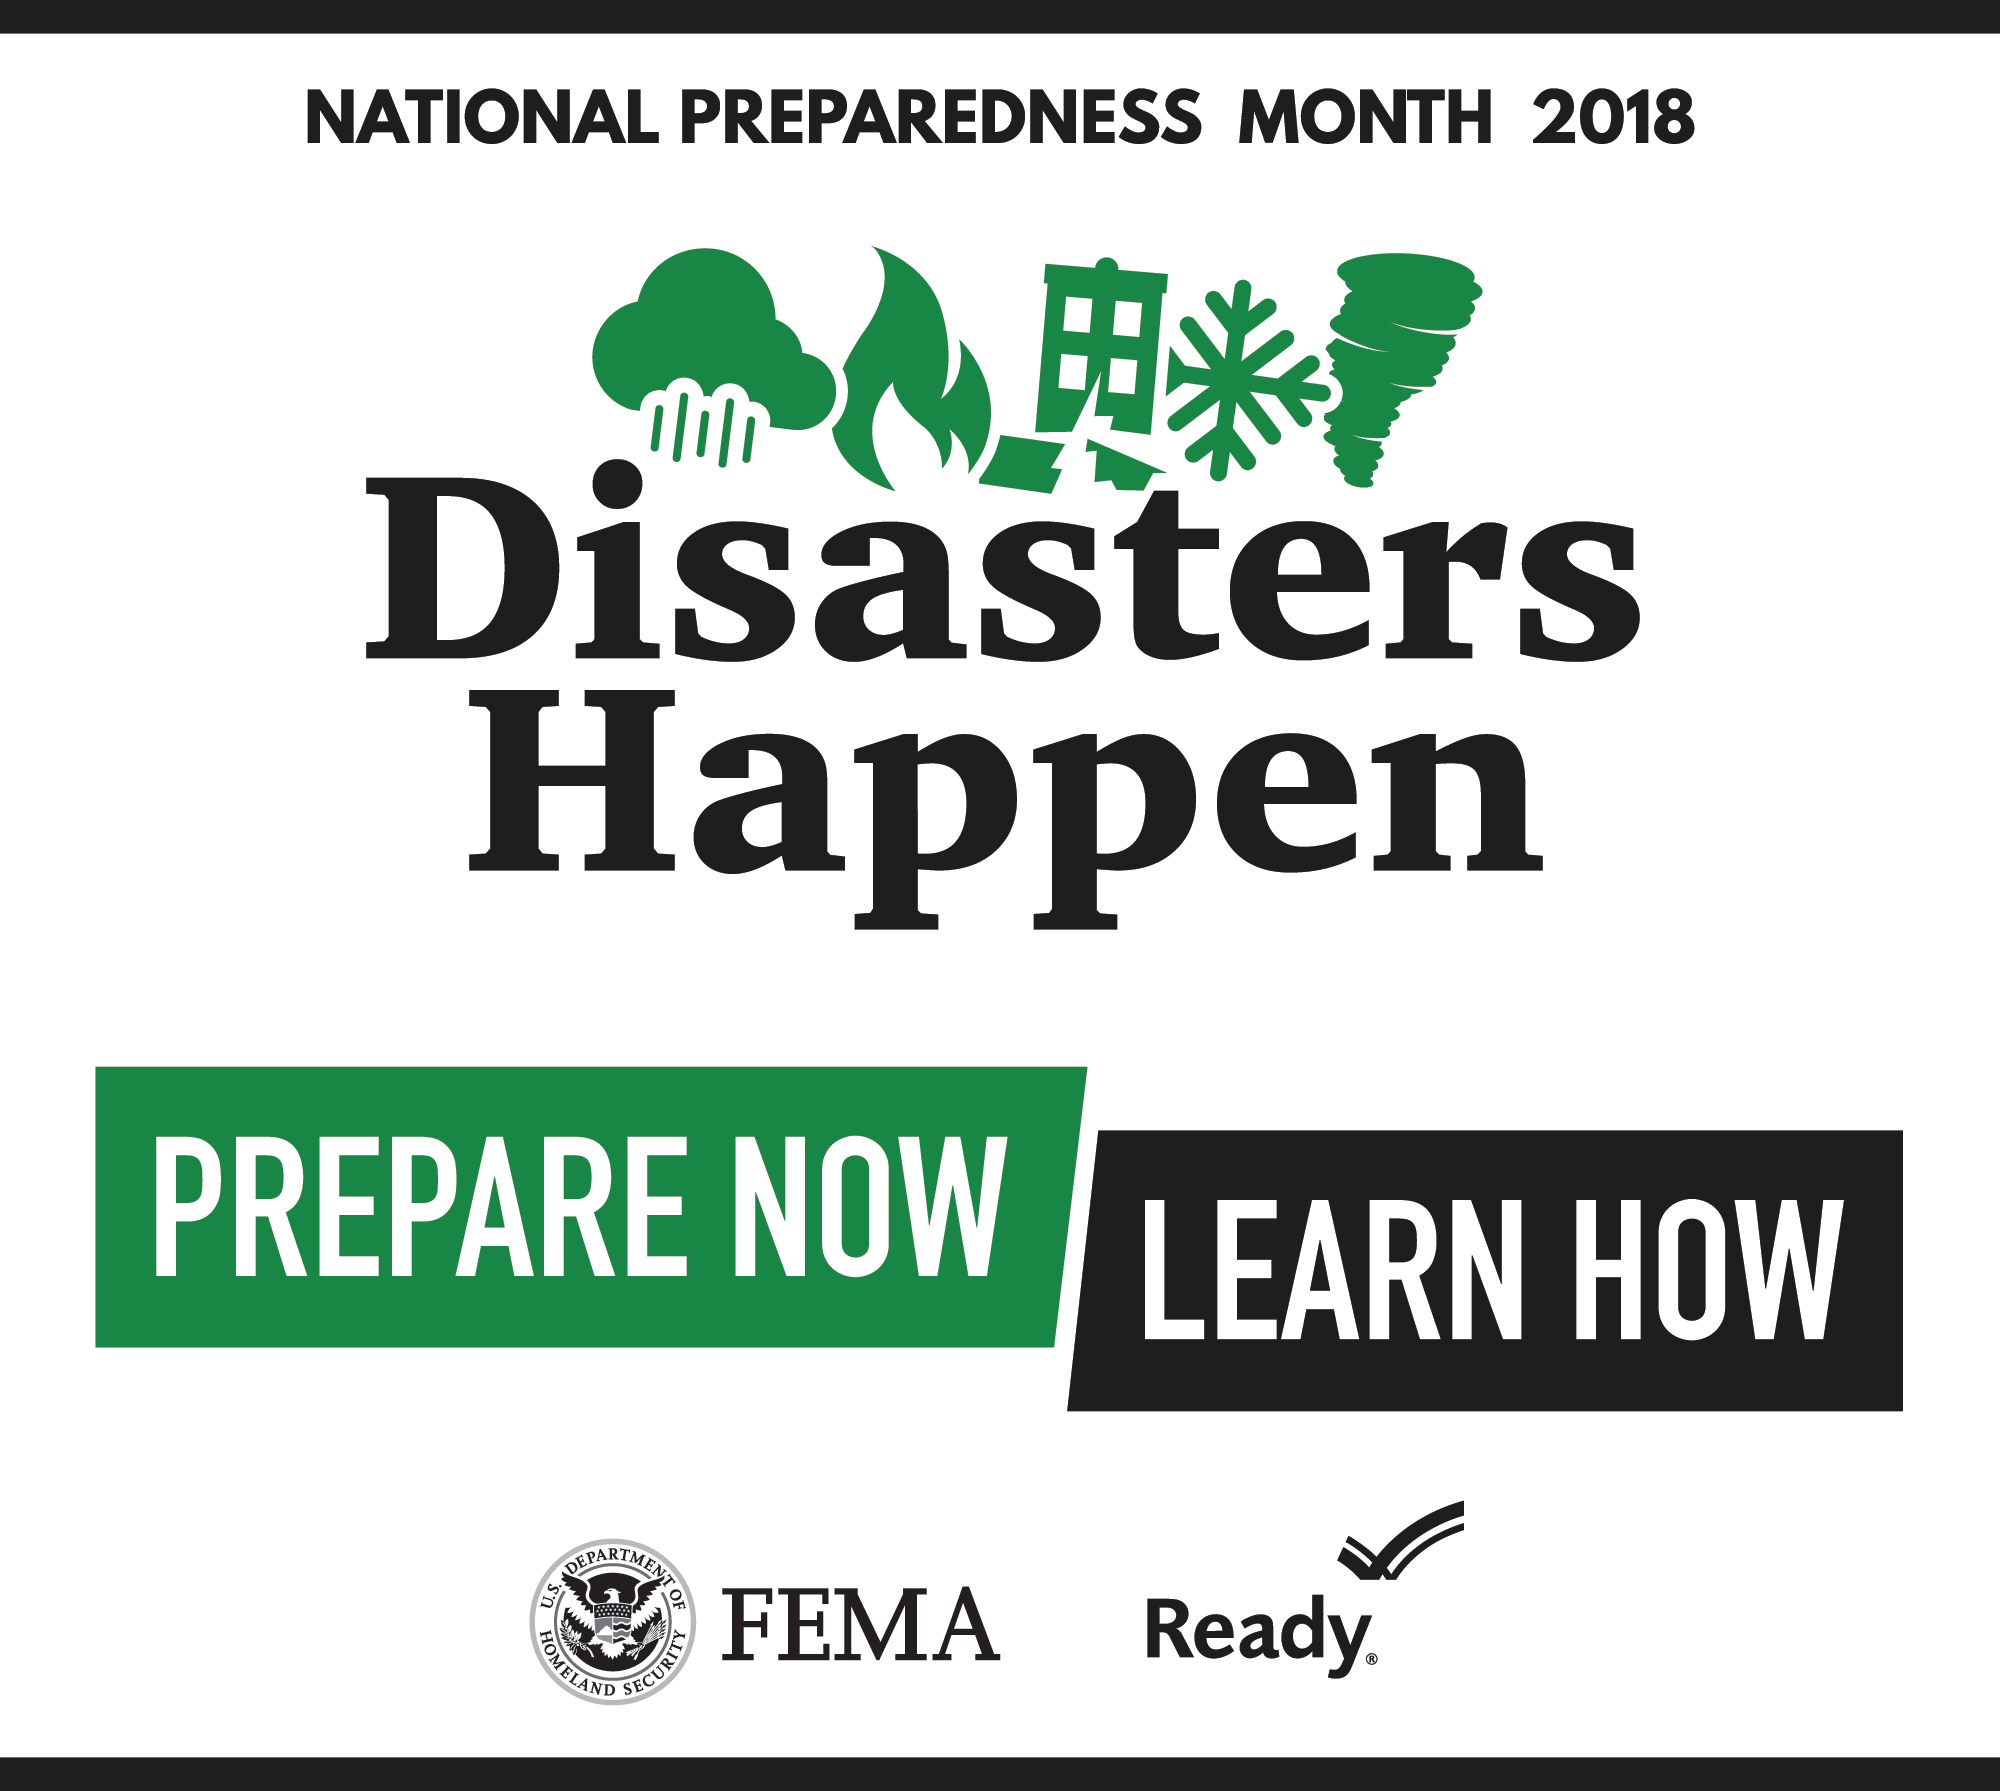 DHS: National Preparedness Month 2018 Archive